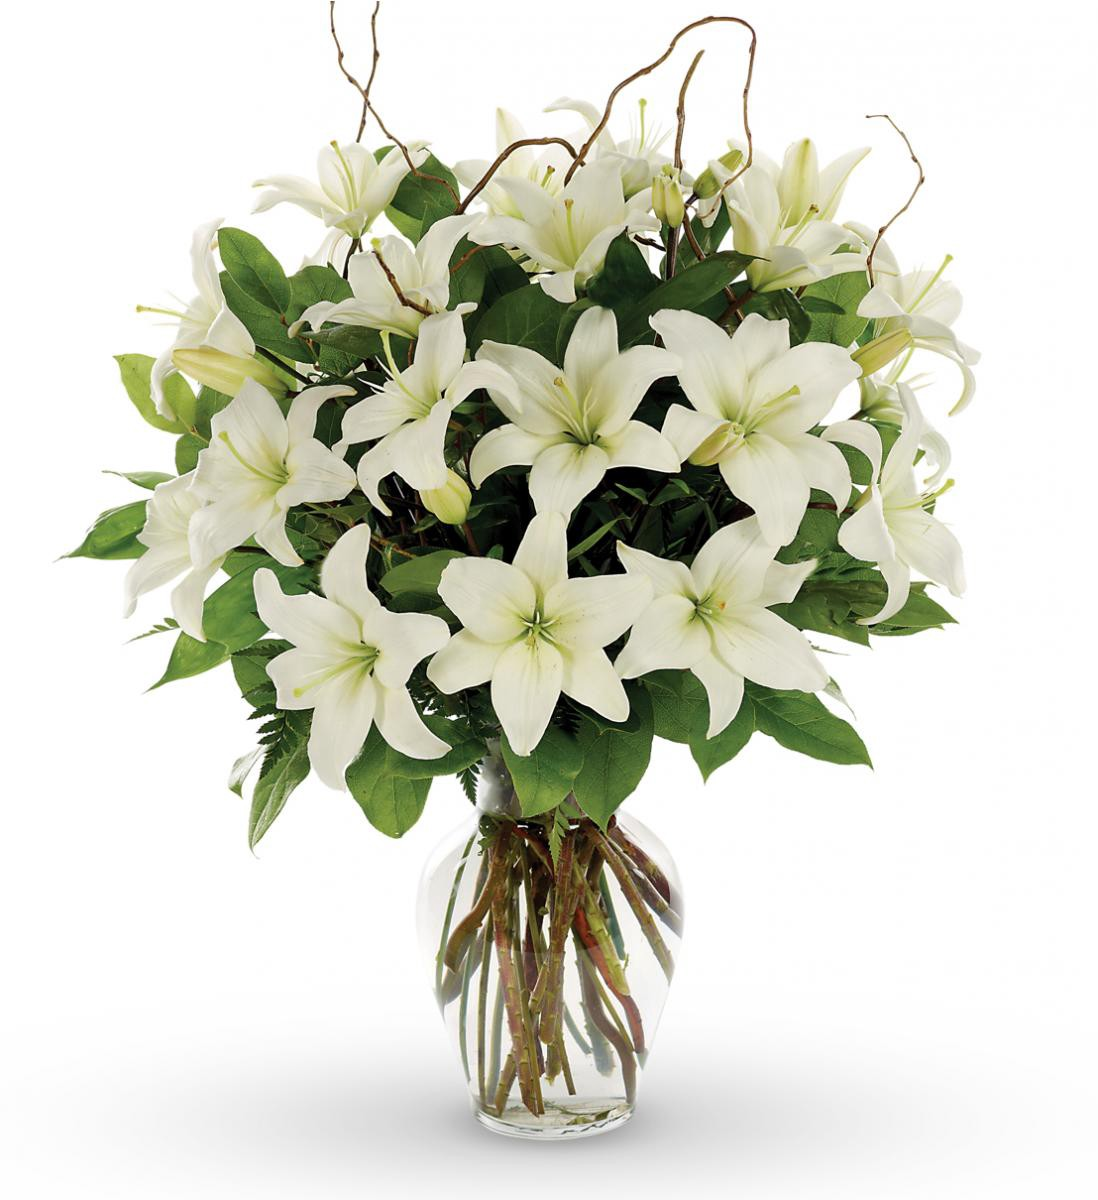 Funeral flowers various types and connotations they carry the smell of lilies is regarded as the scent that you generally get while crossing the house of the deceased this place smell like a funeral home is izmirmasajfo Choice Image